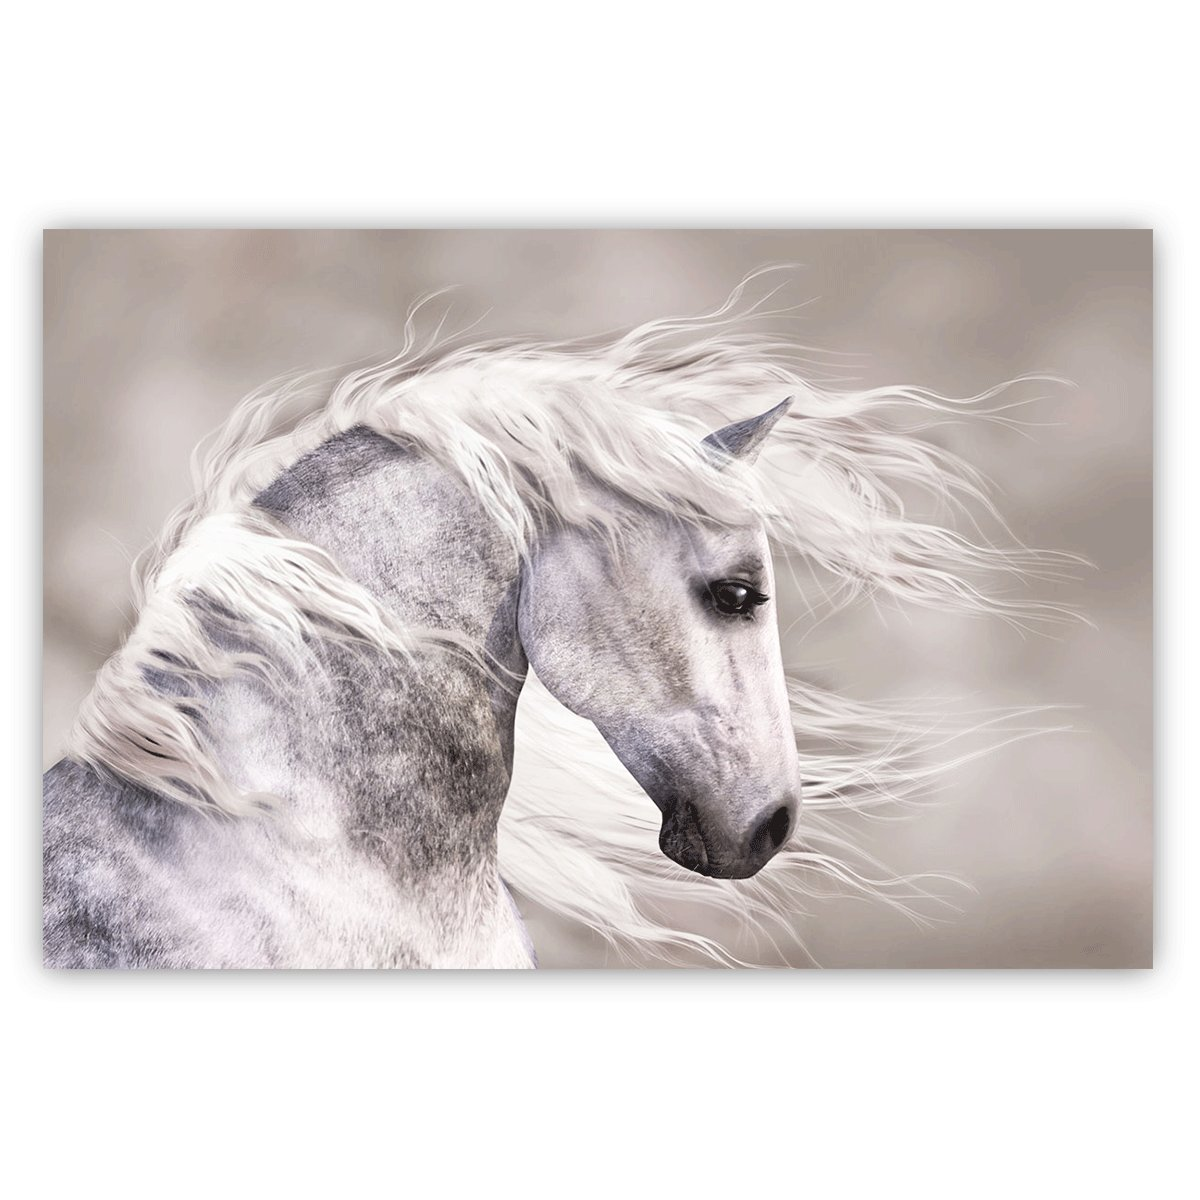 Studio 500, Museum Grade Canvas Art - Natures Beauty The White Horse in Black & White, 48'' x 32'' High Resolution Giclee Printing, from Our Global Collection, H0027